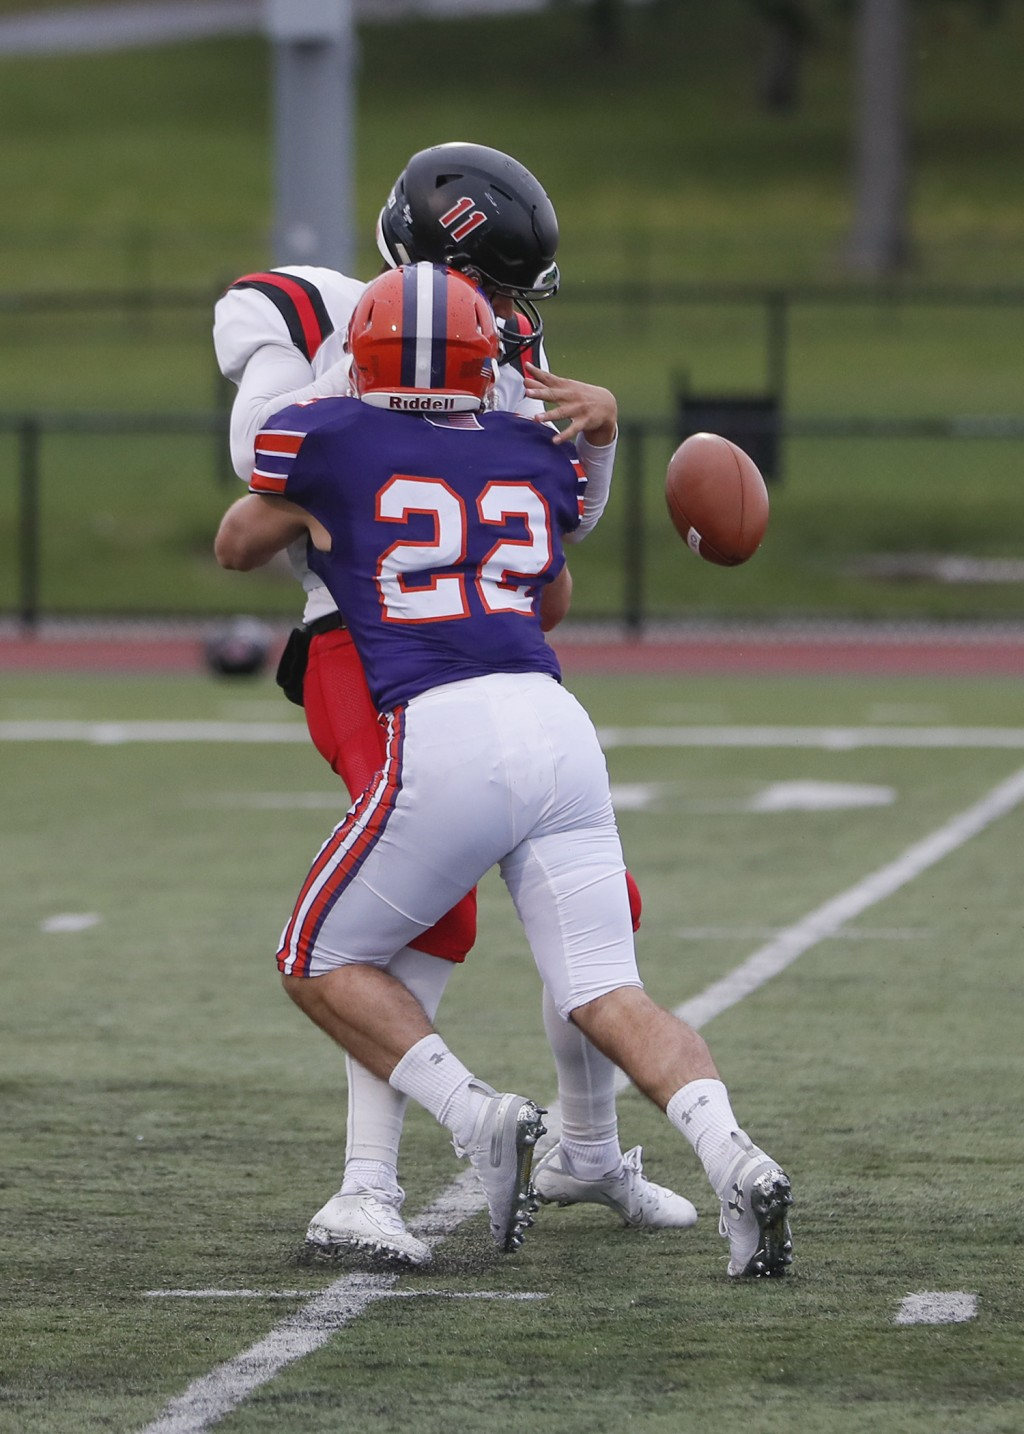 In this image provided by Hobart and William Smith Colleges, Hobart linebacker Emmett Forde knocks the ball loose as he sacks RPI quarterback George M...